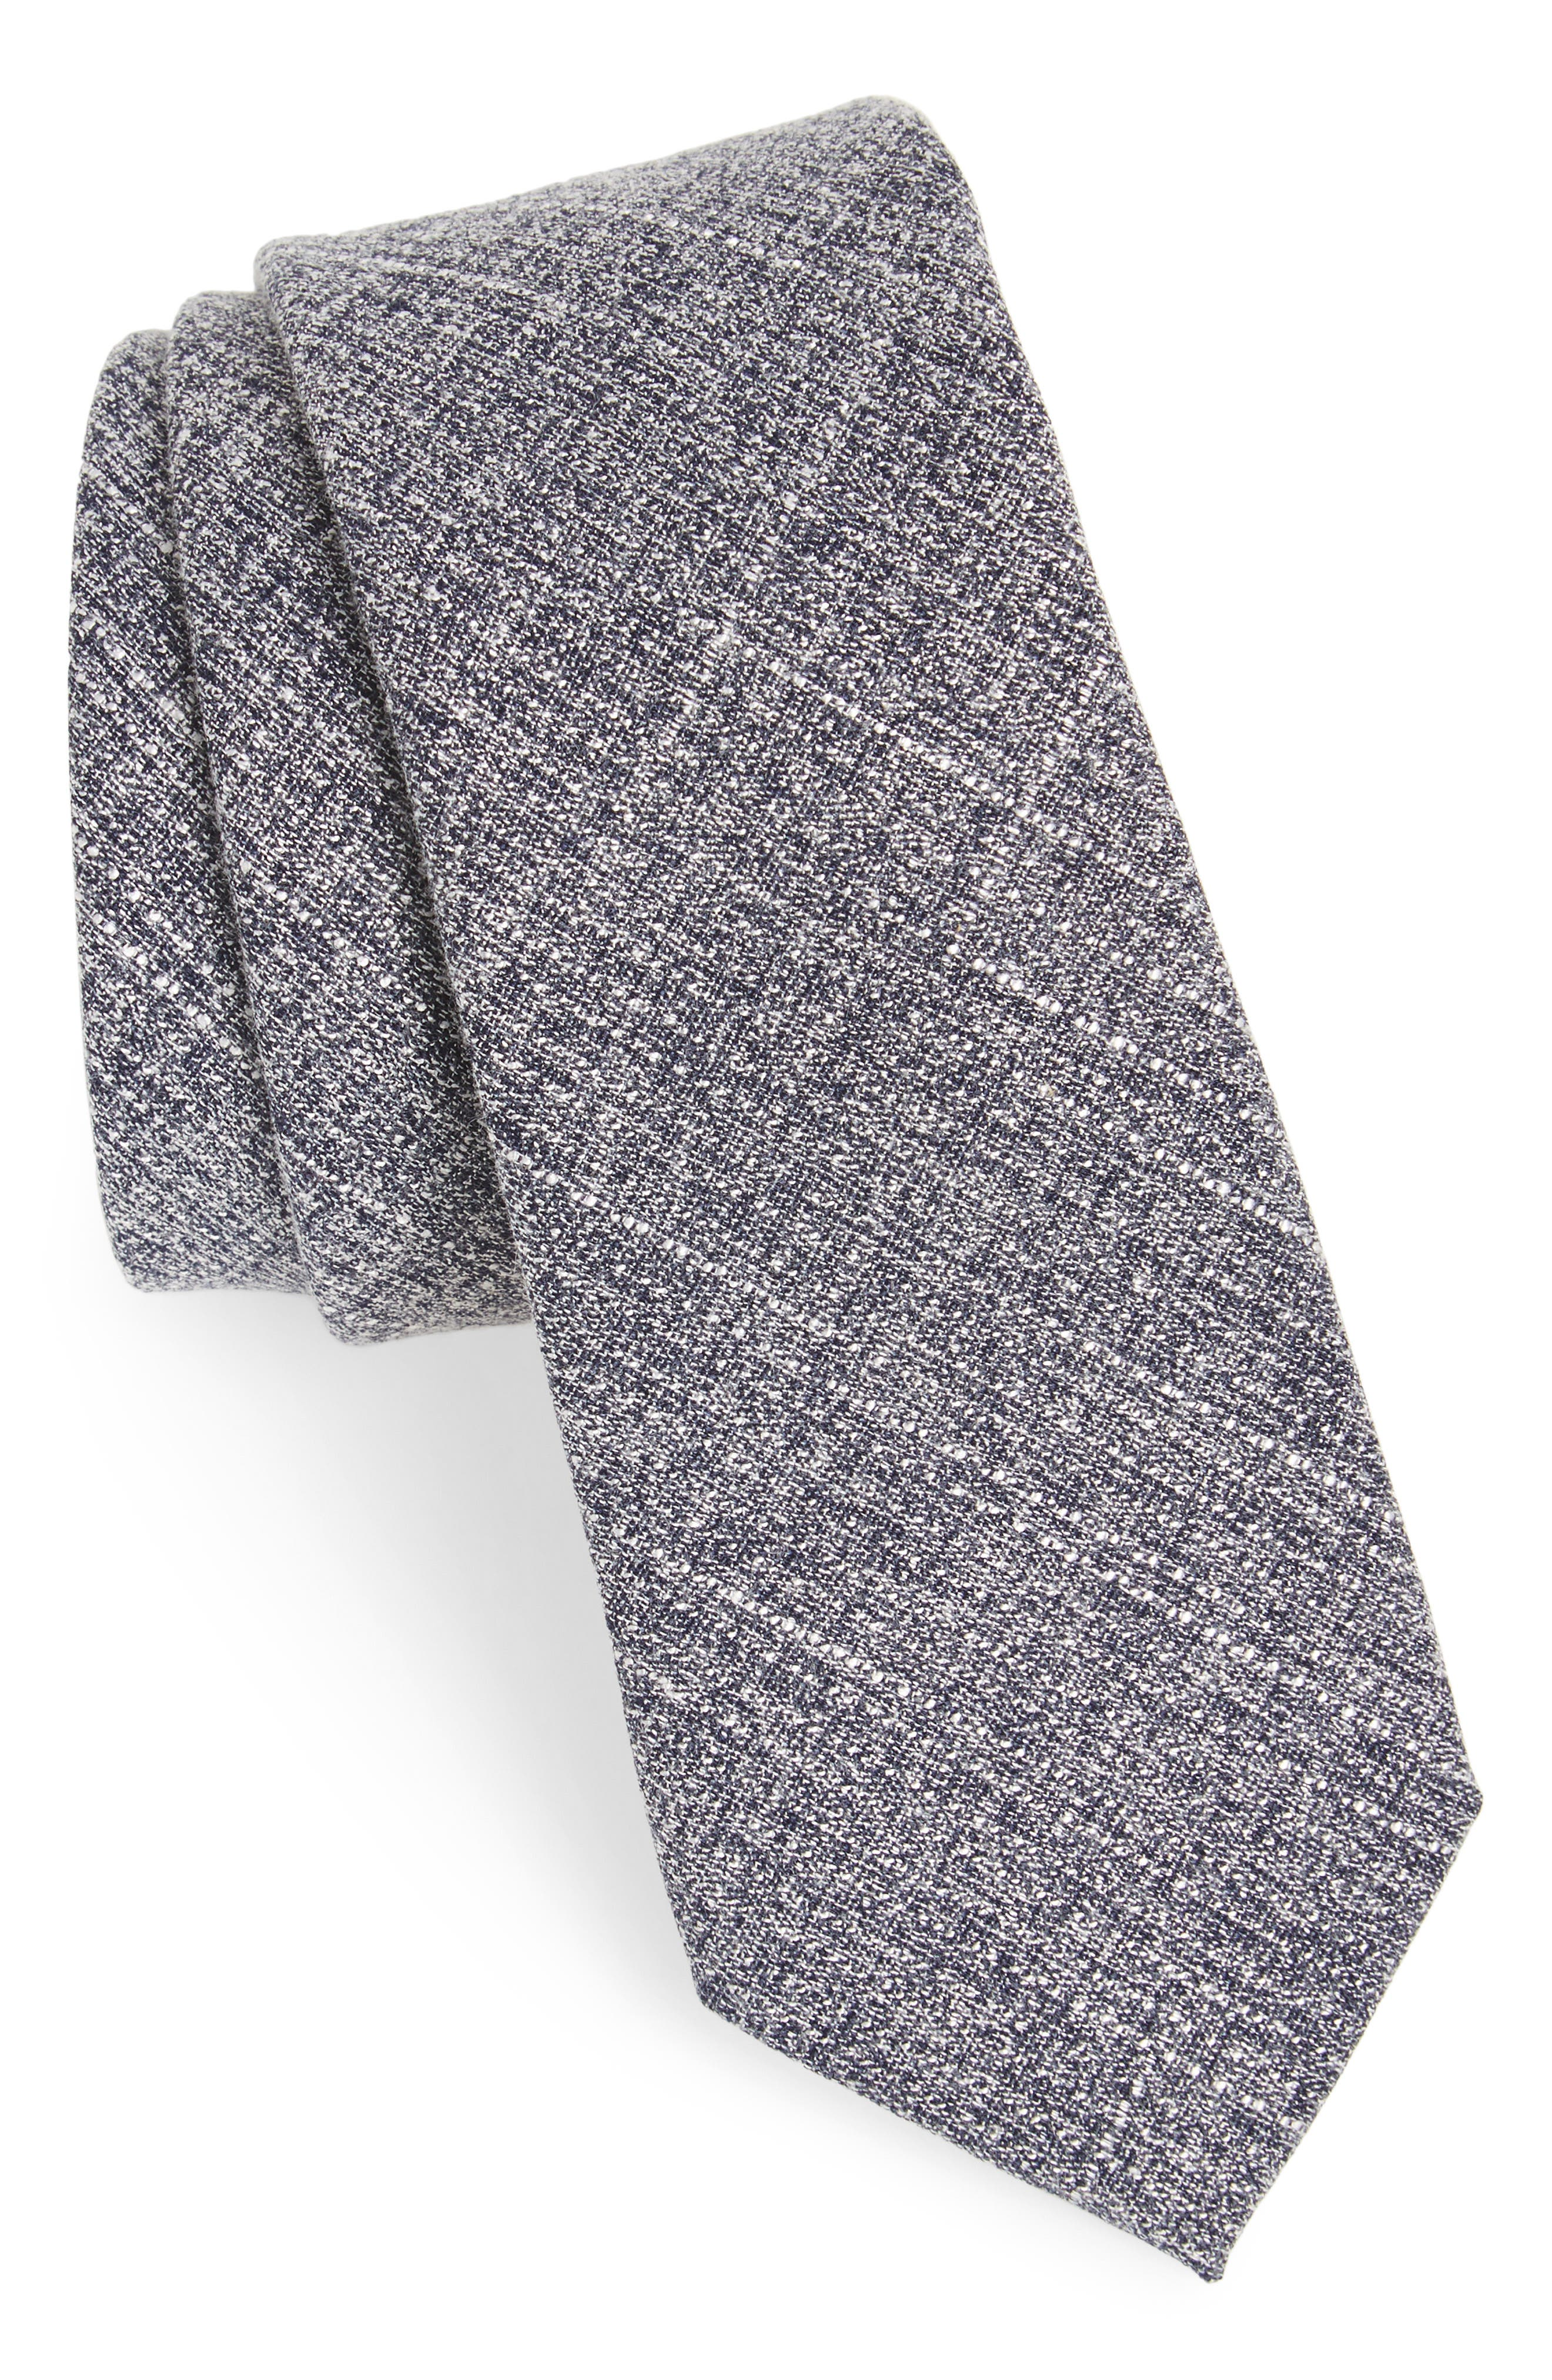 Alternate Image 1 Selected - Nordstrom Men's Shop Hudson Tie